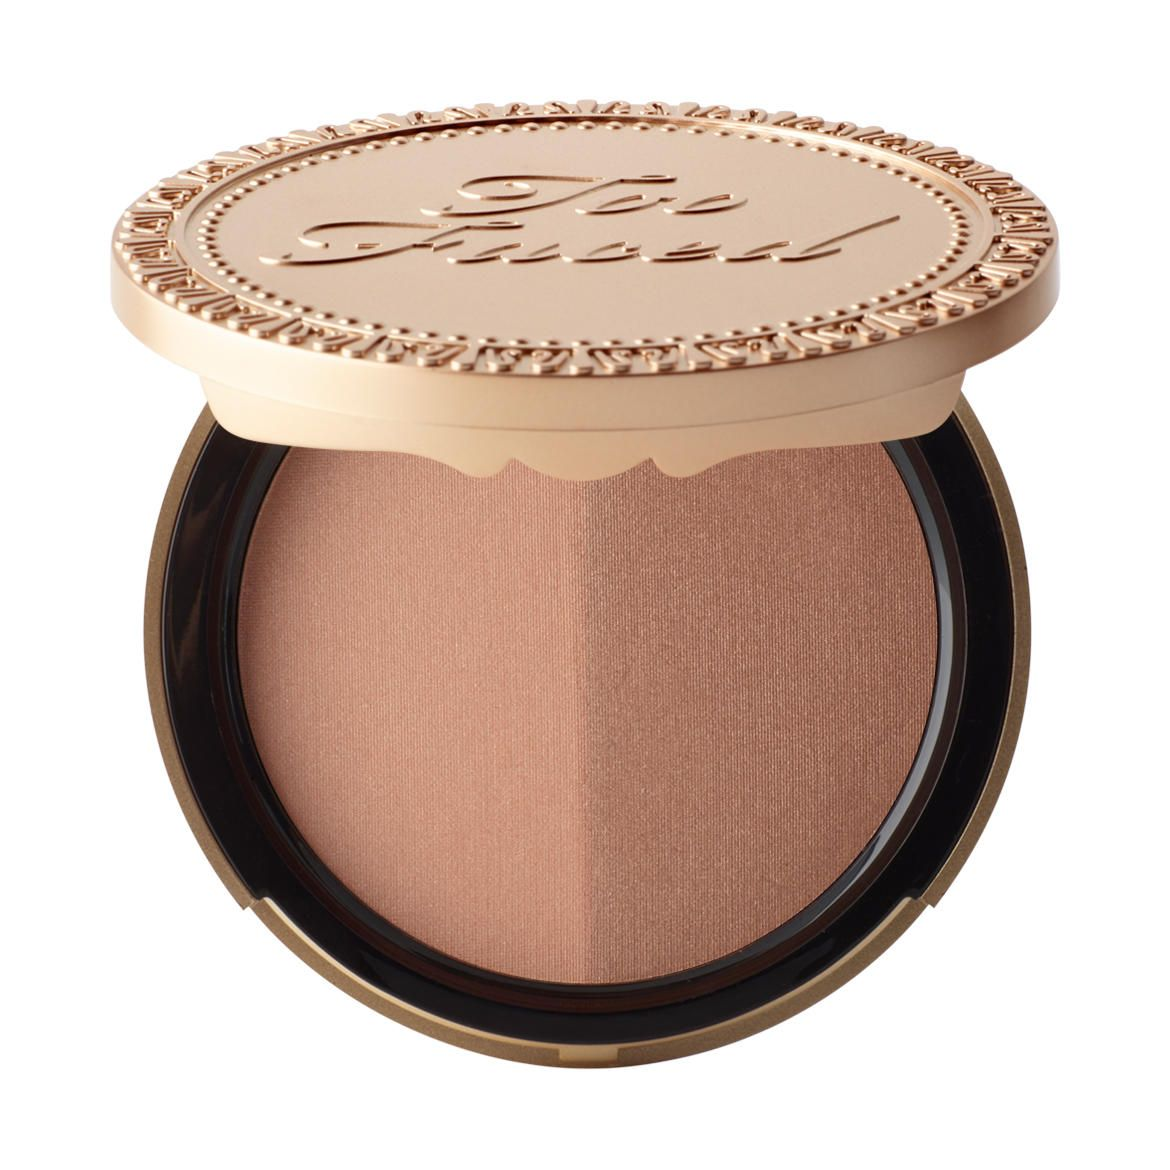 Too Faced Natural Bronzer Sun Bunny Chocolate soleil